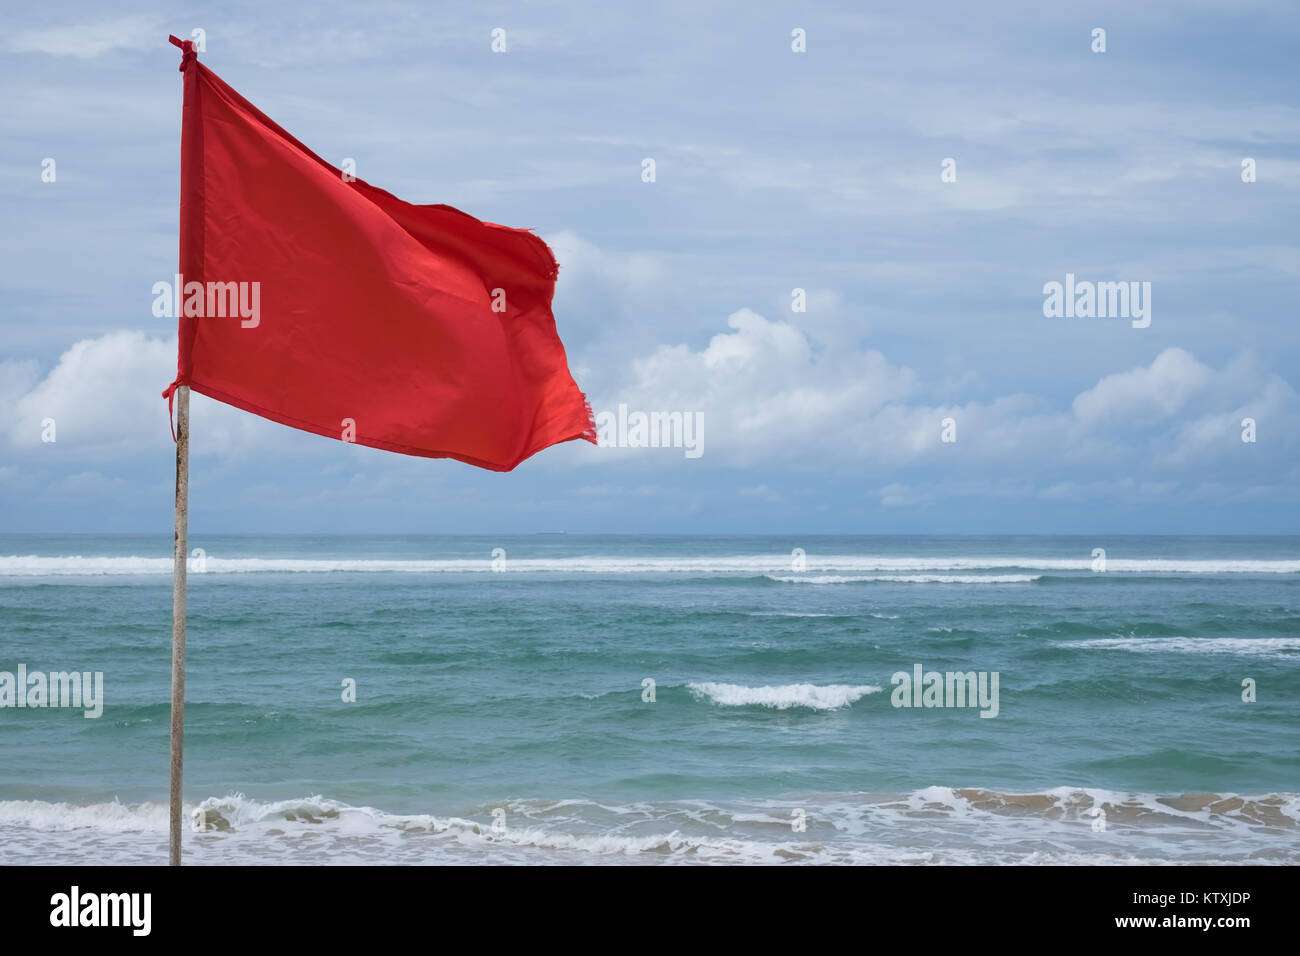 A red warning flag on the beach in the Nuca Dua Bali - Stock Image